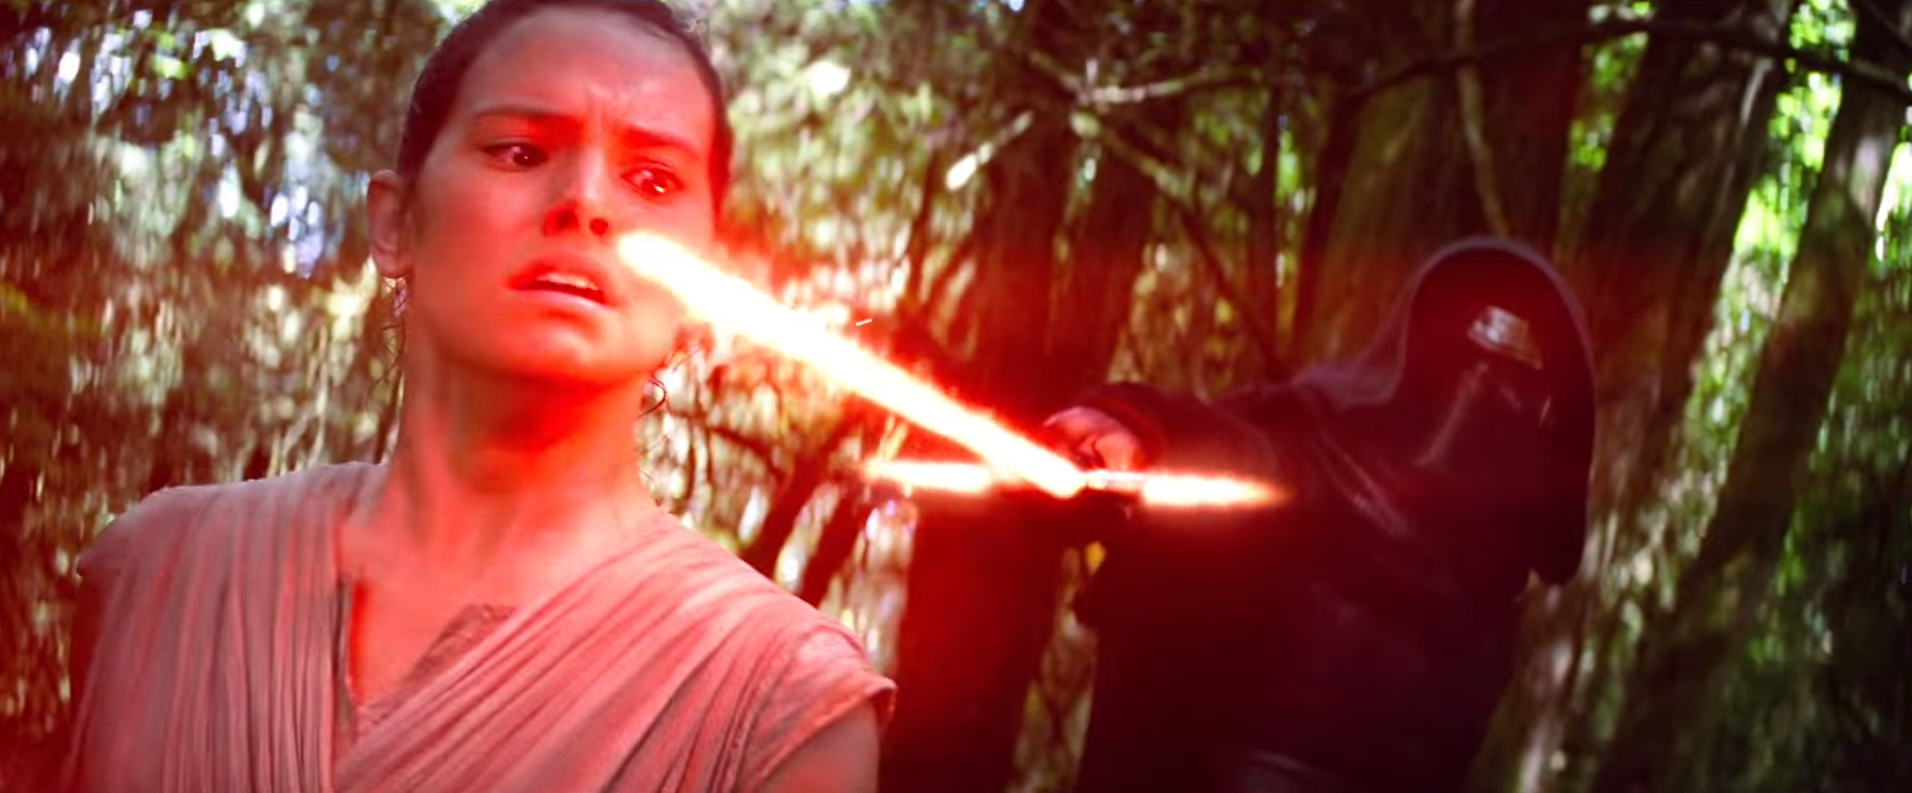 New Japanese Star Wars trailer reveals previously unseen footage